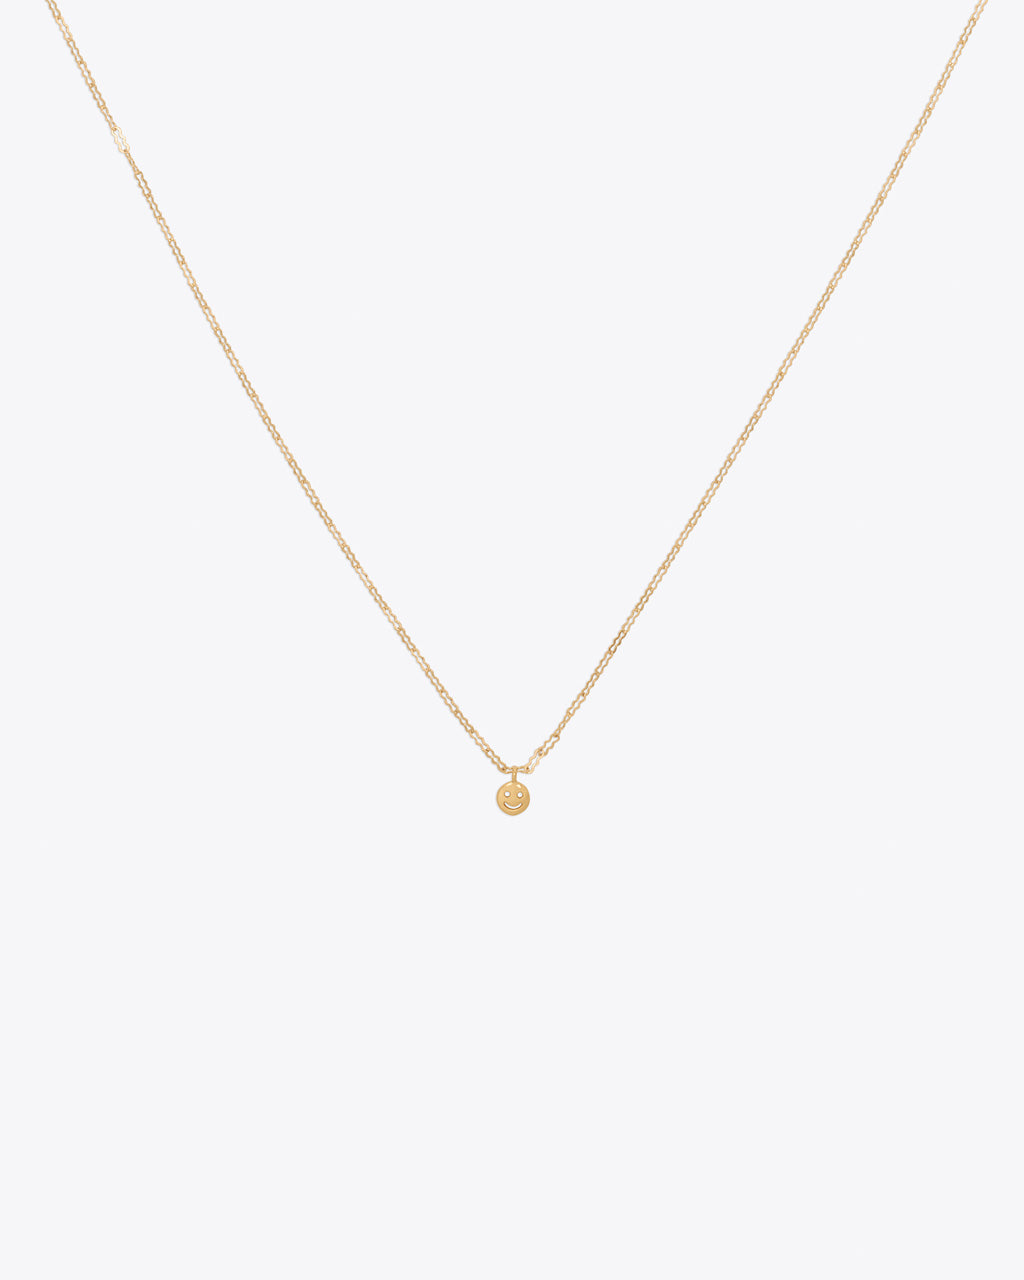 Gold necklace with a small smiley face pendent